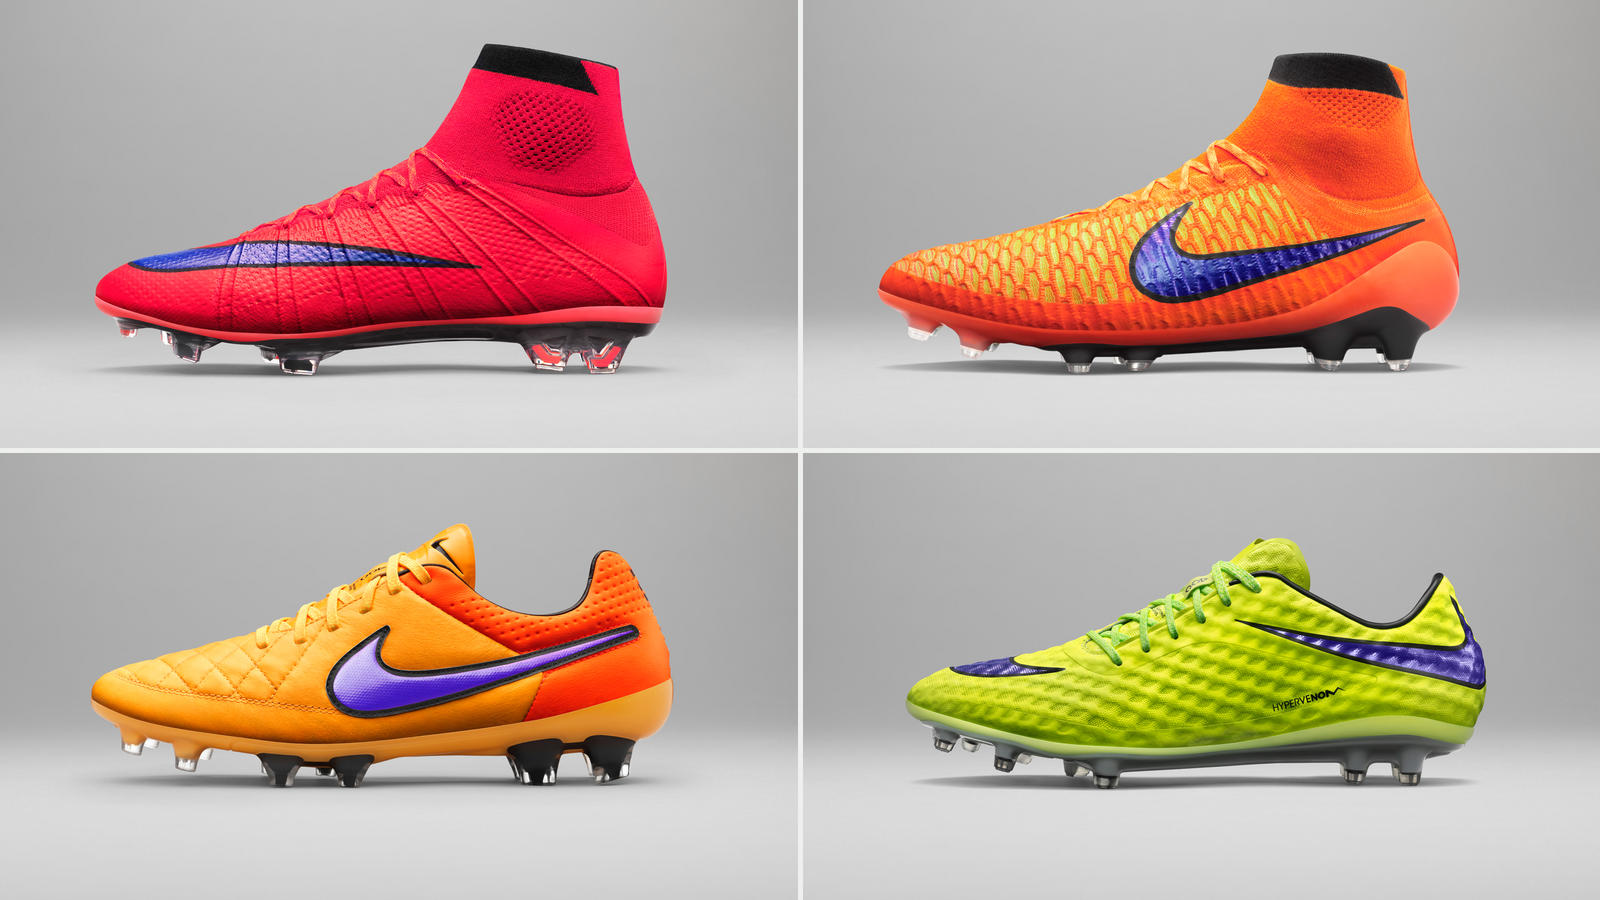 Mercurial-Magista-Tiempo-Hypervenom-Brighten-Pitch